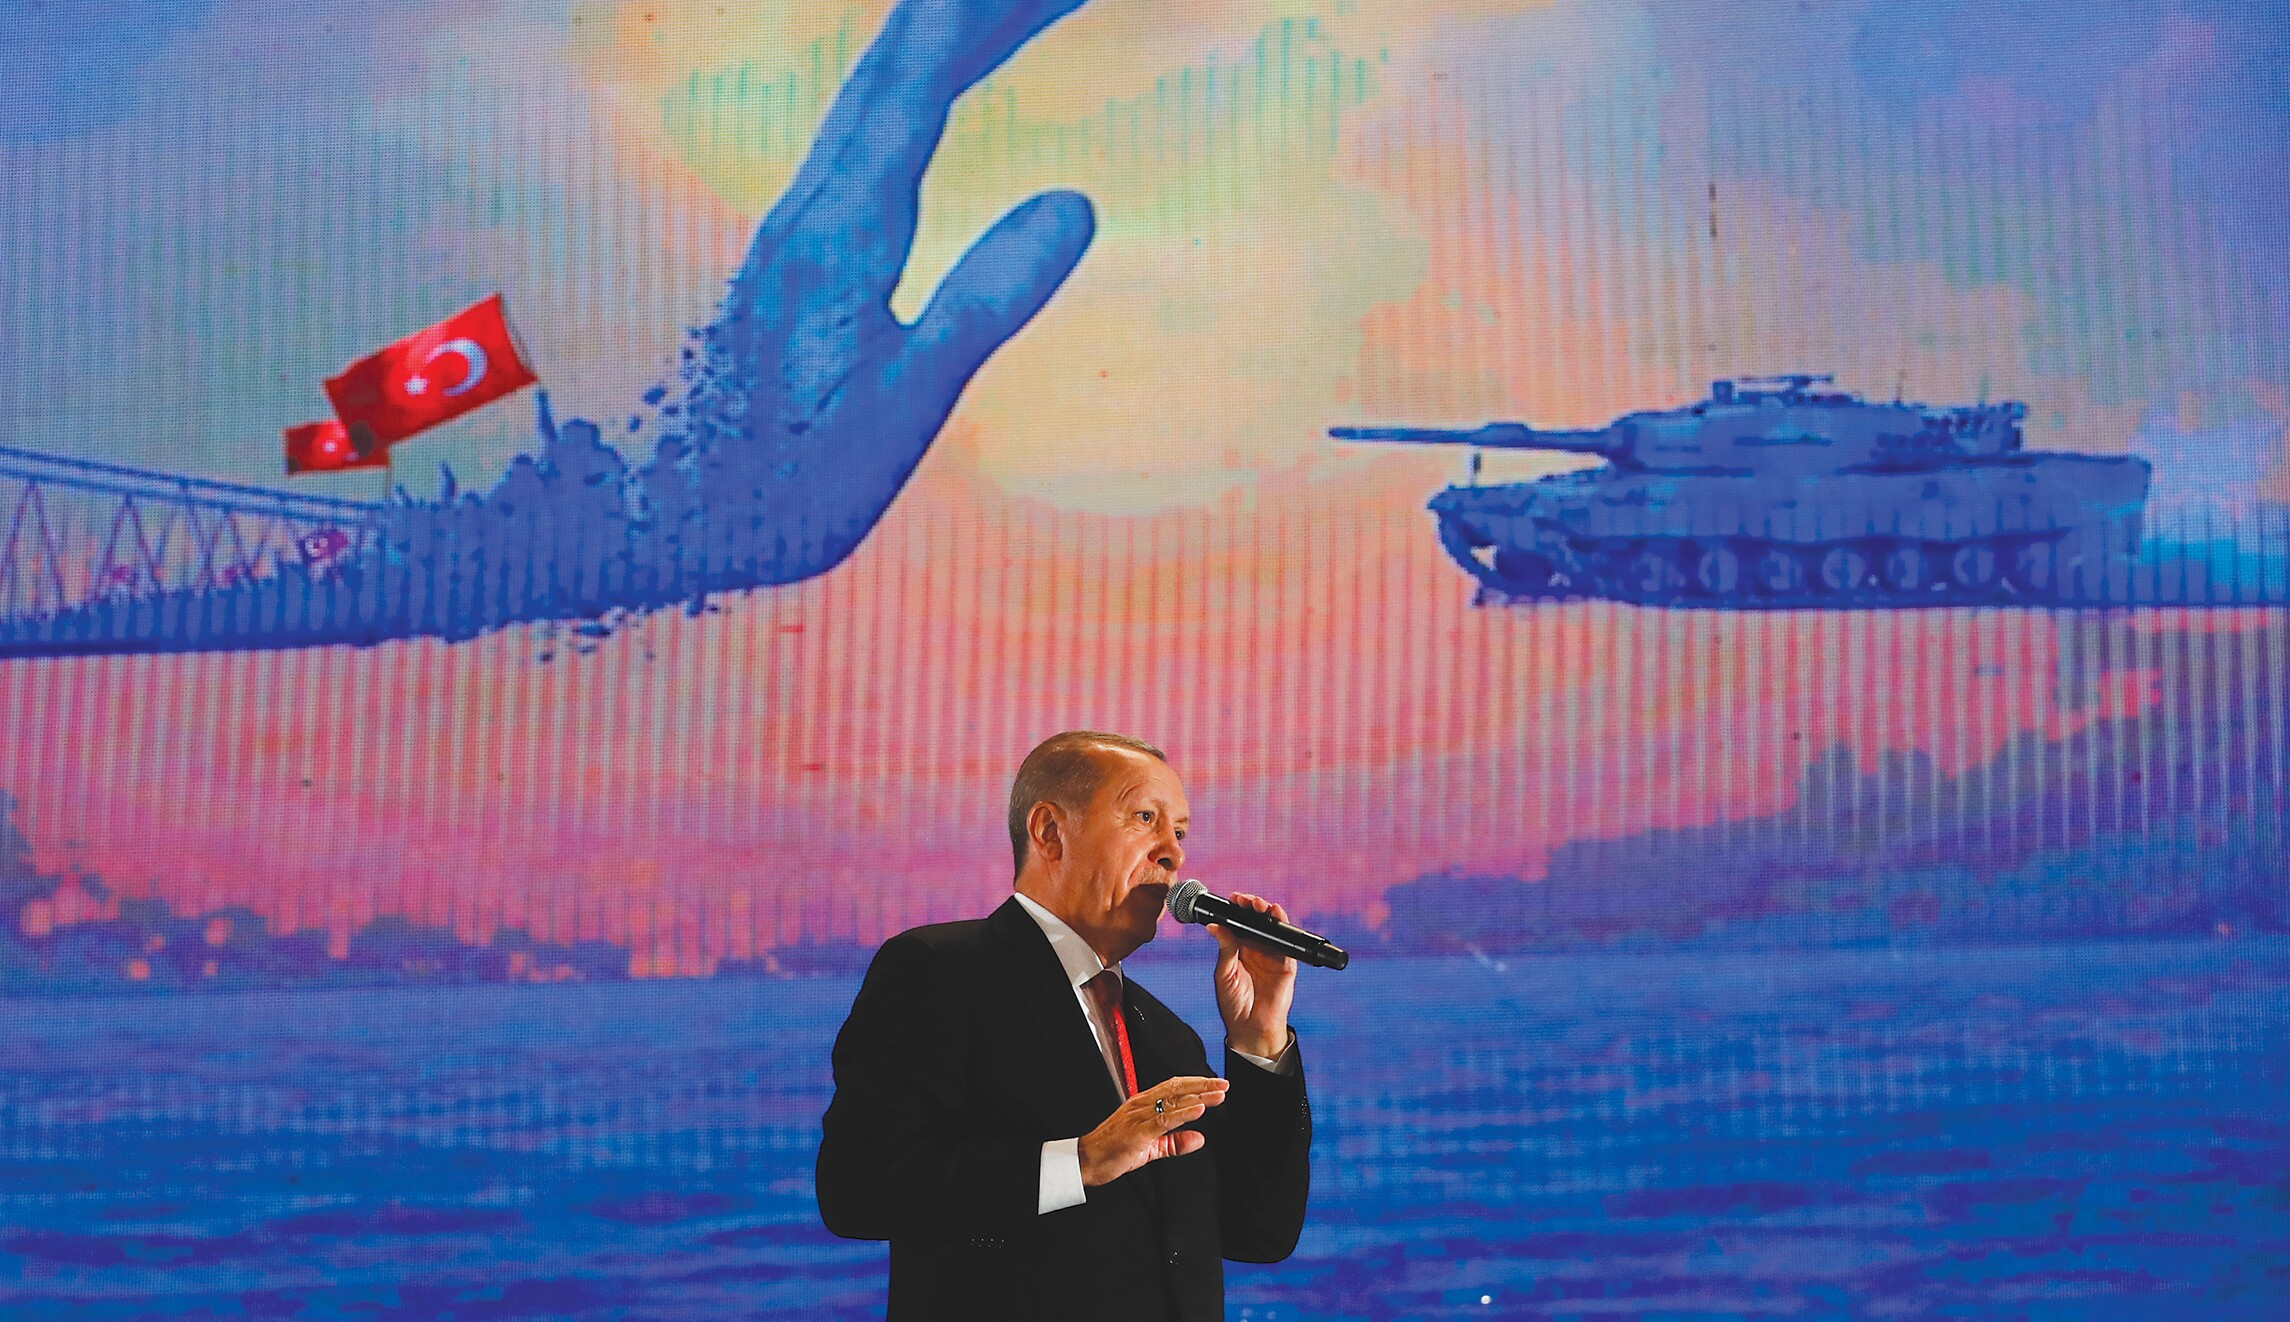 Can Turkey be trusted with U.S. nukes?